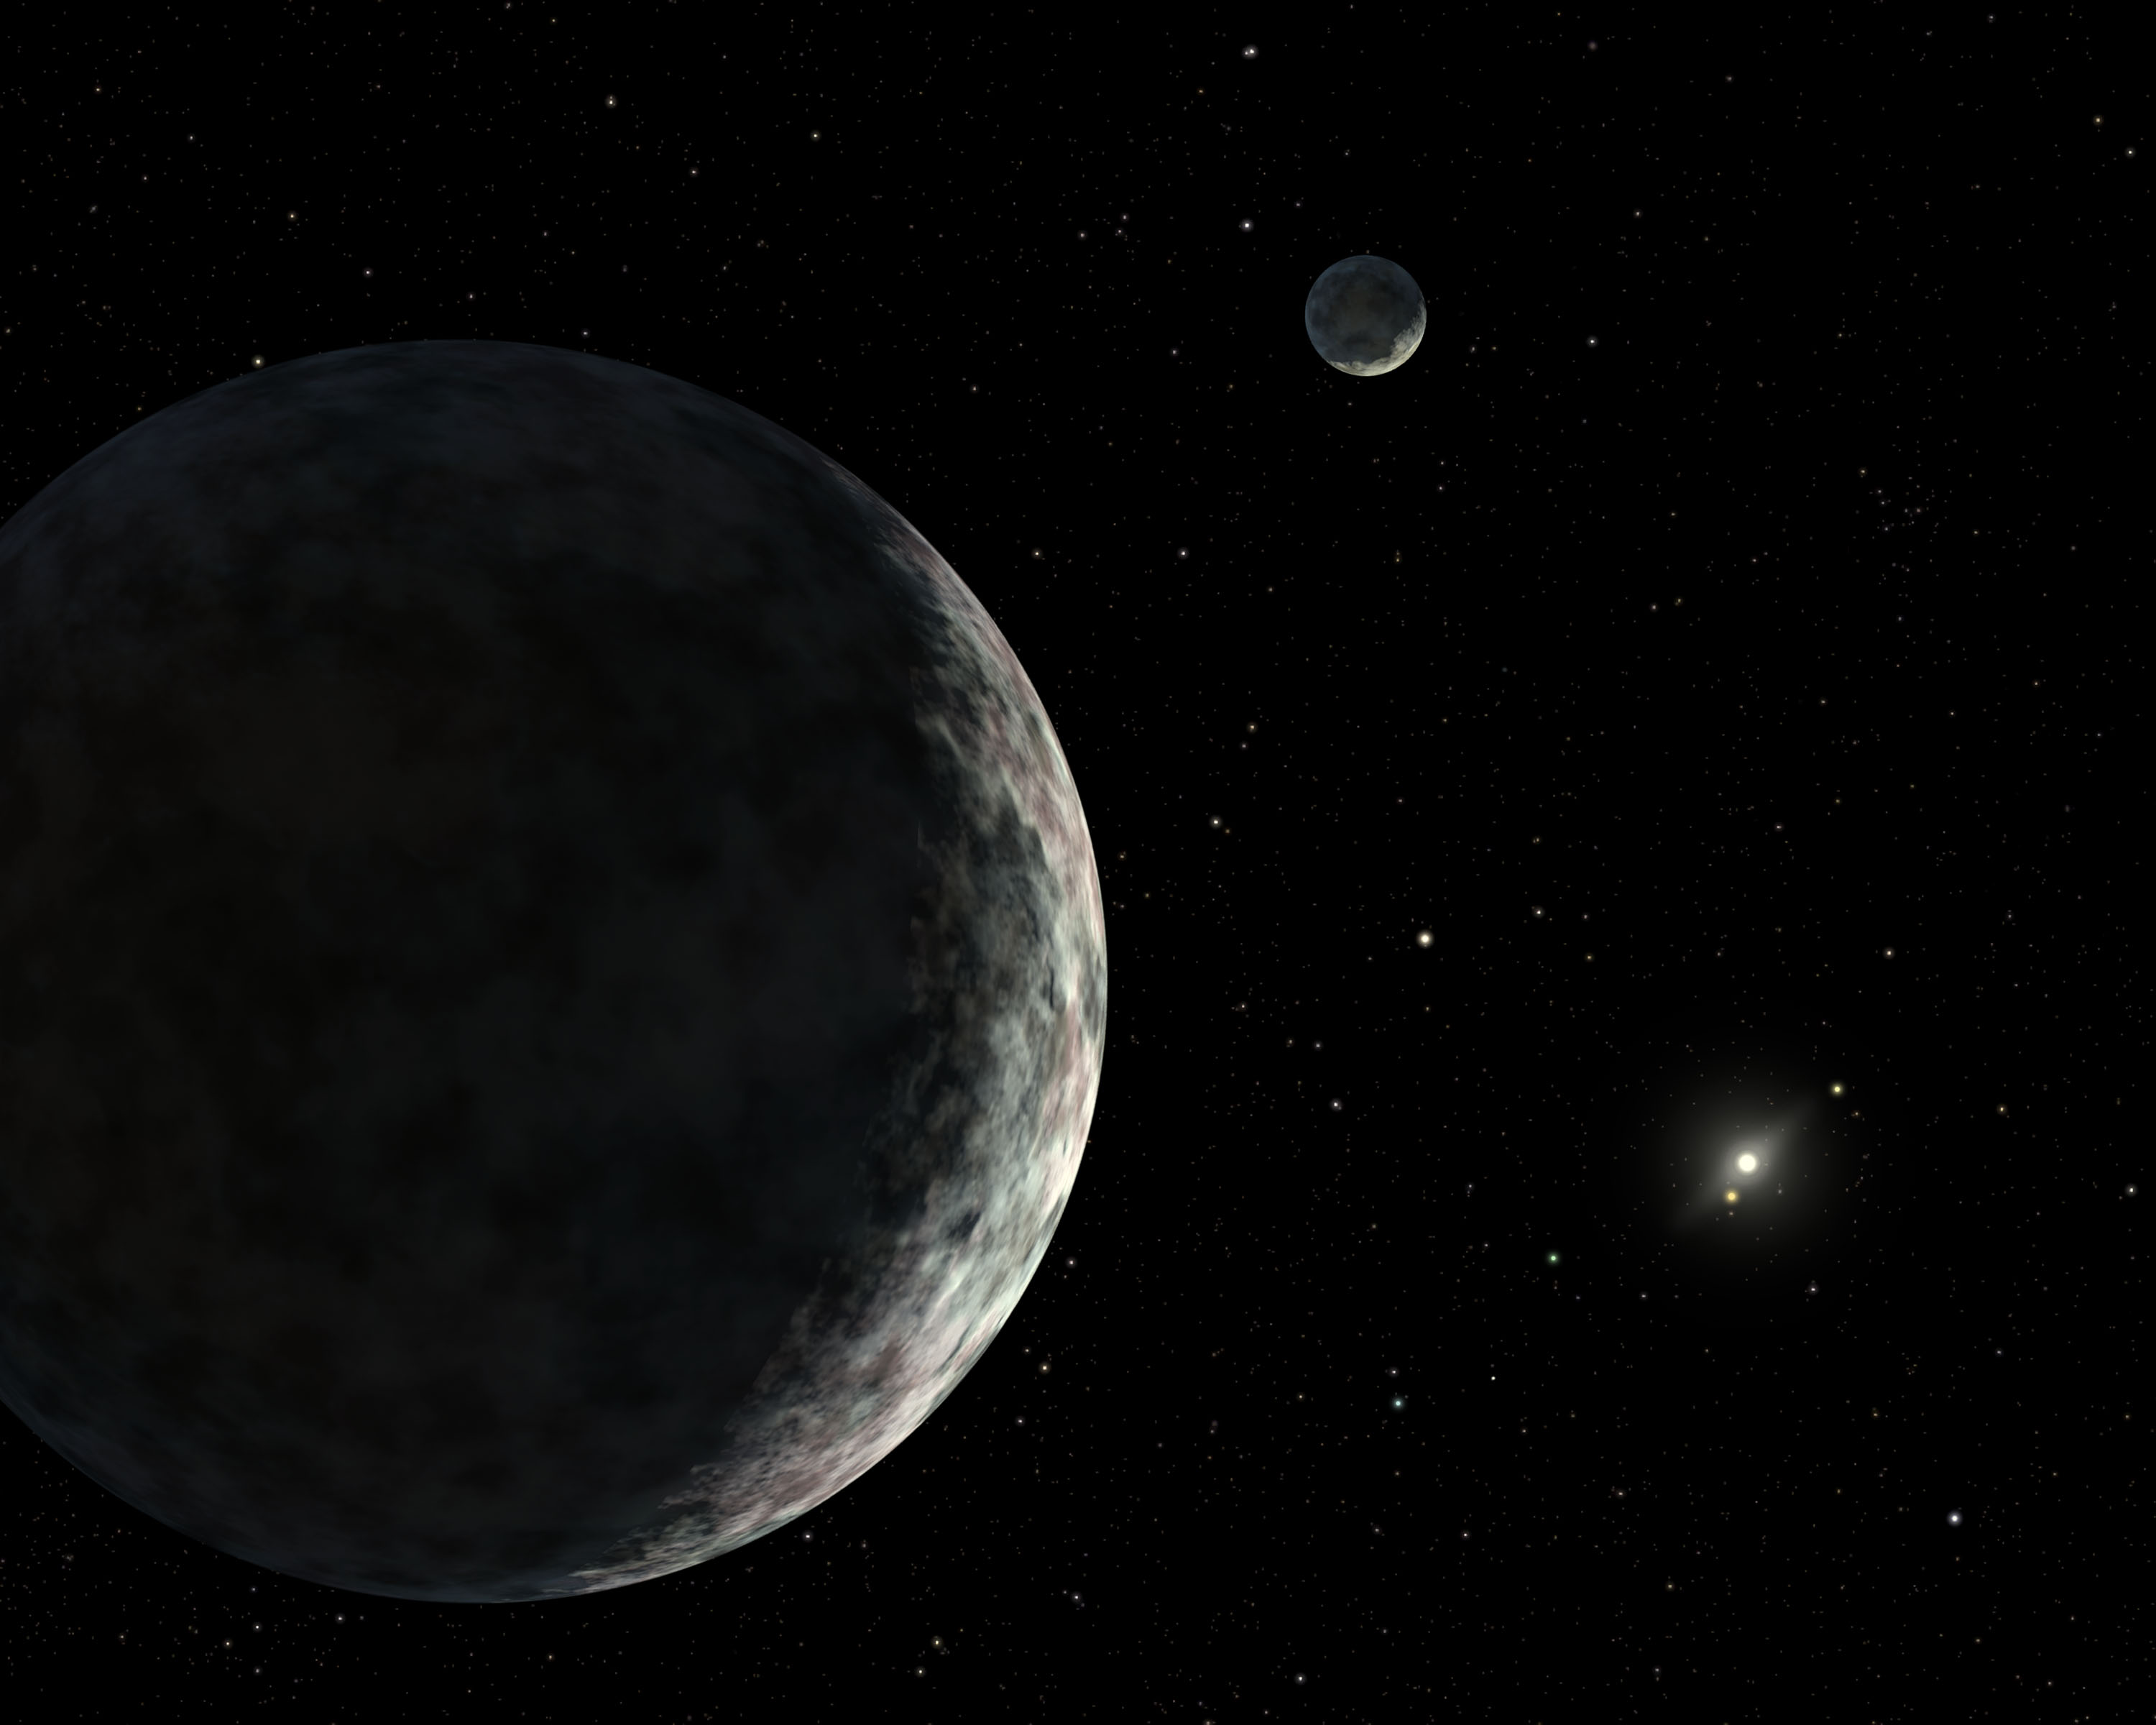 Dwarf Planet Discovery Could Help Show Life's Spread Through Solar System